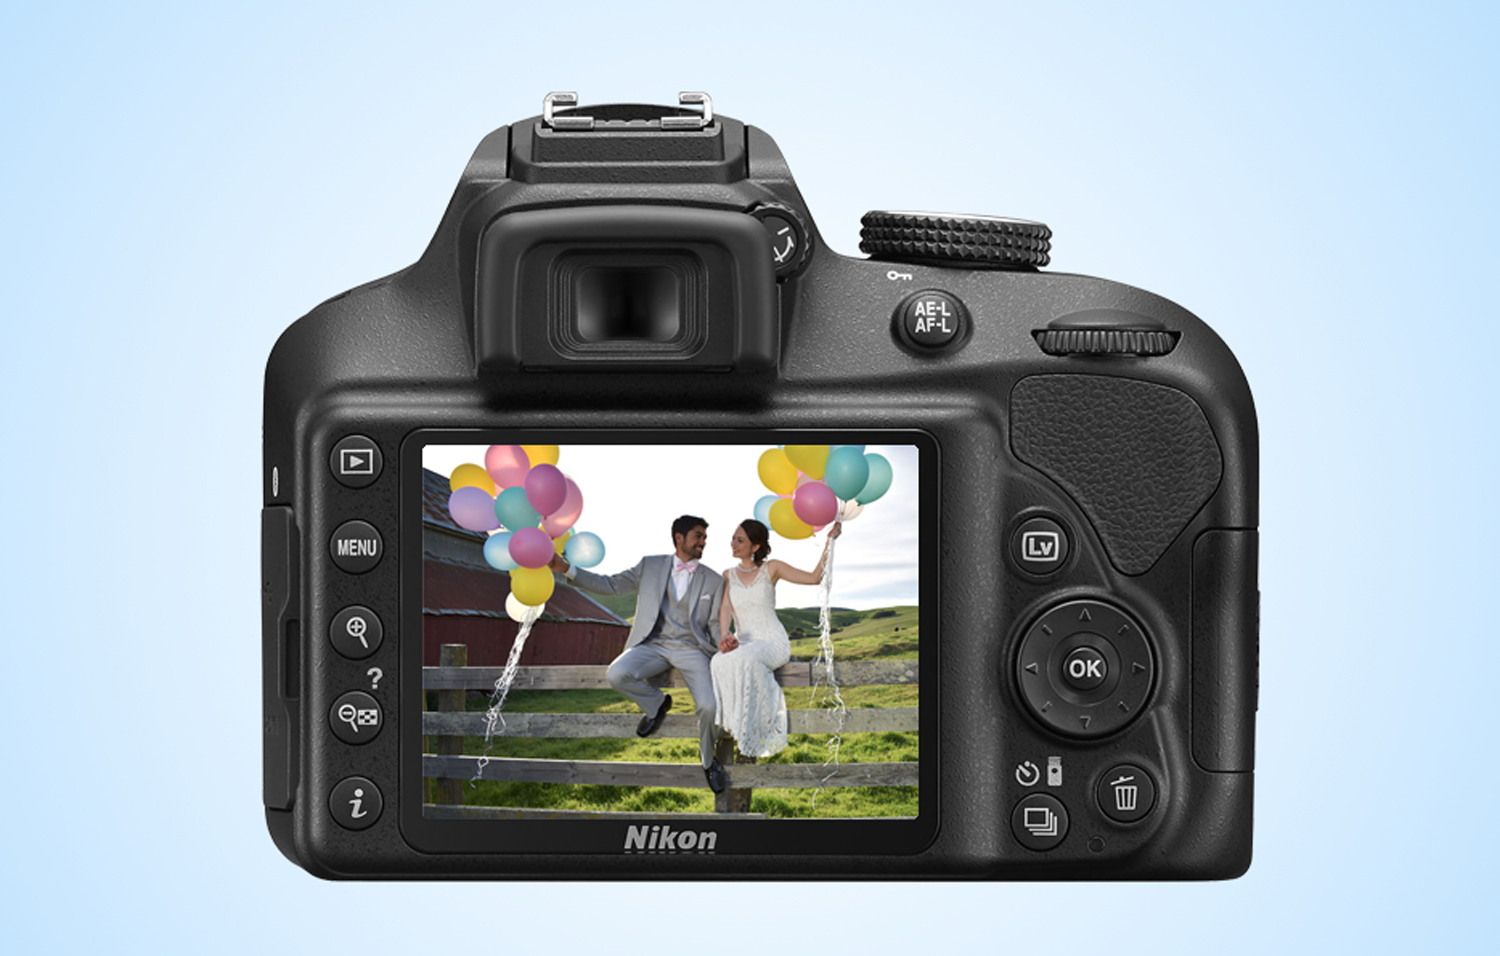 How to Use the Nikon D3400 - Tips, Tricks and Manual Settings